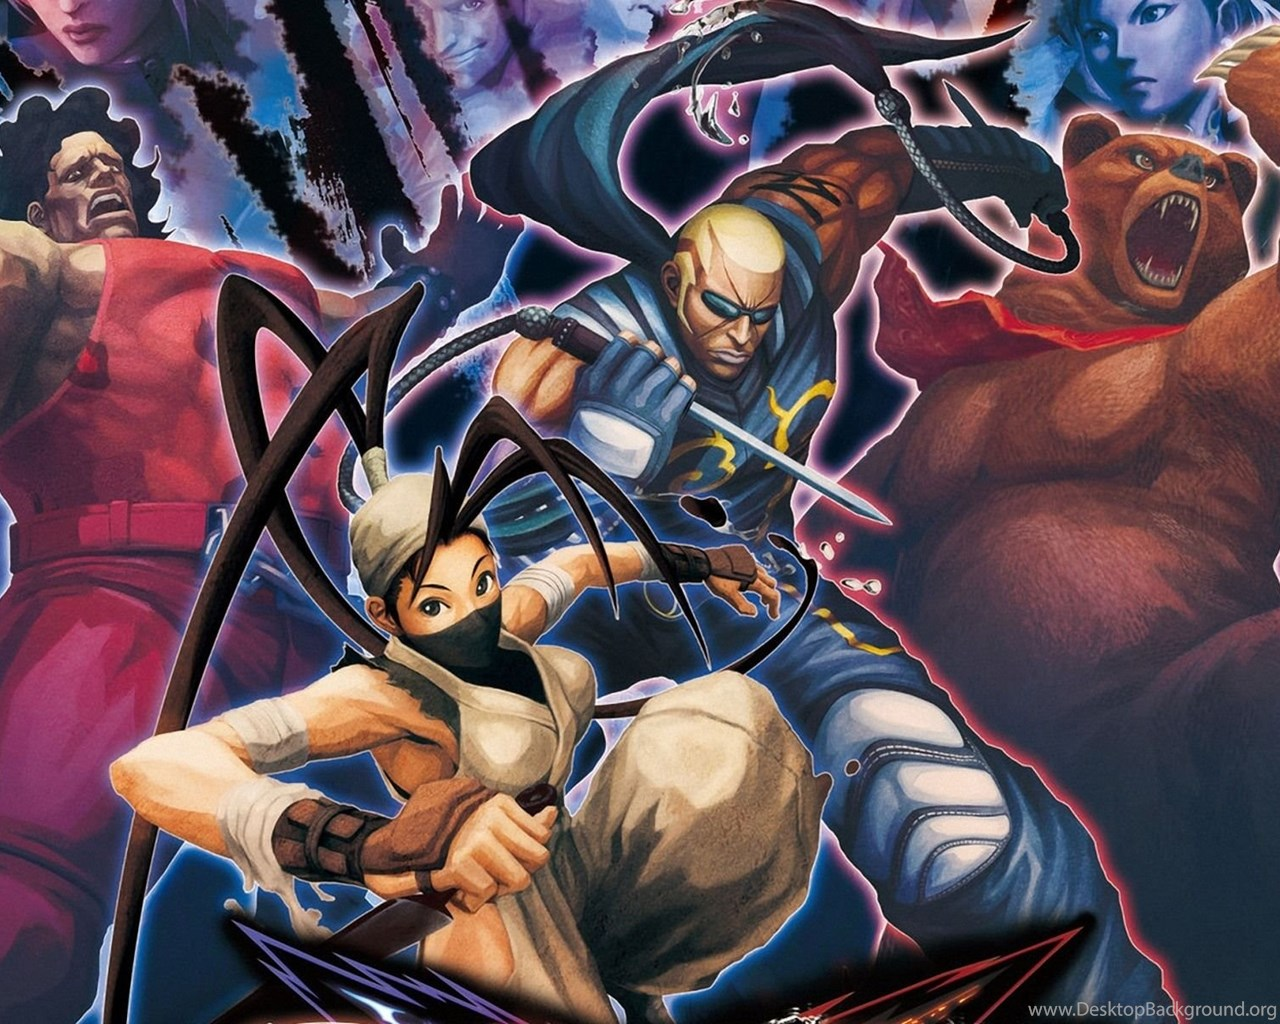 Street Fighter X Tekken Wallpapers Wallpapers Free Street Fighter Desktop Background